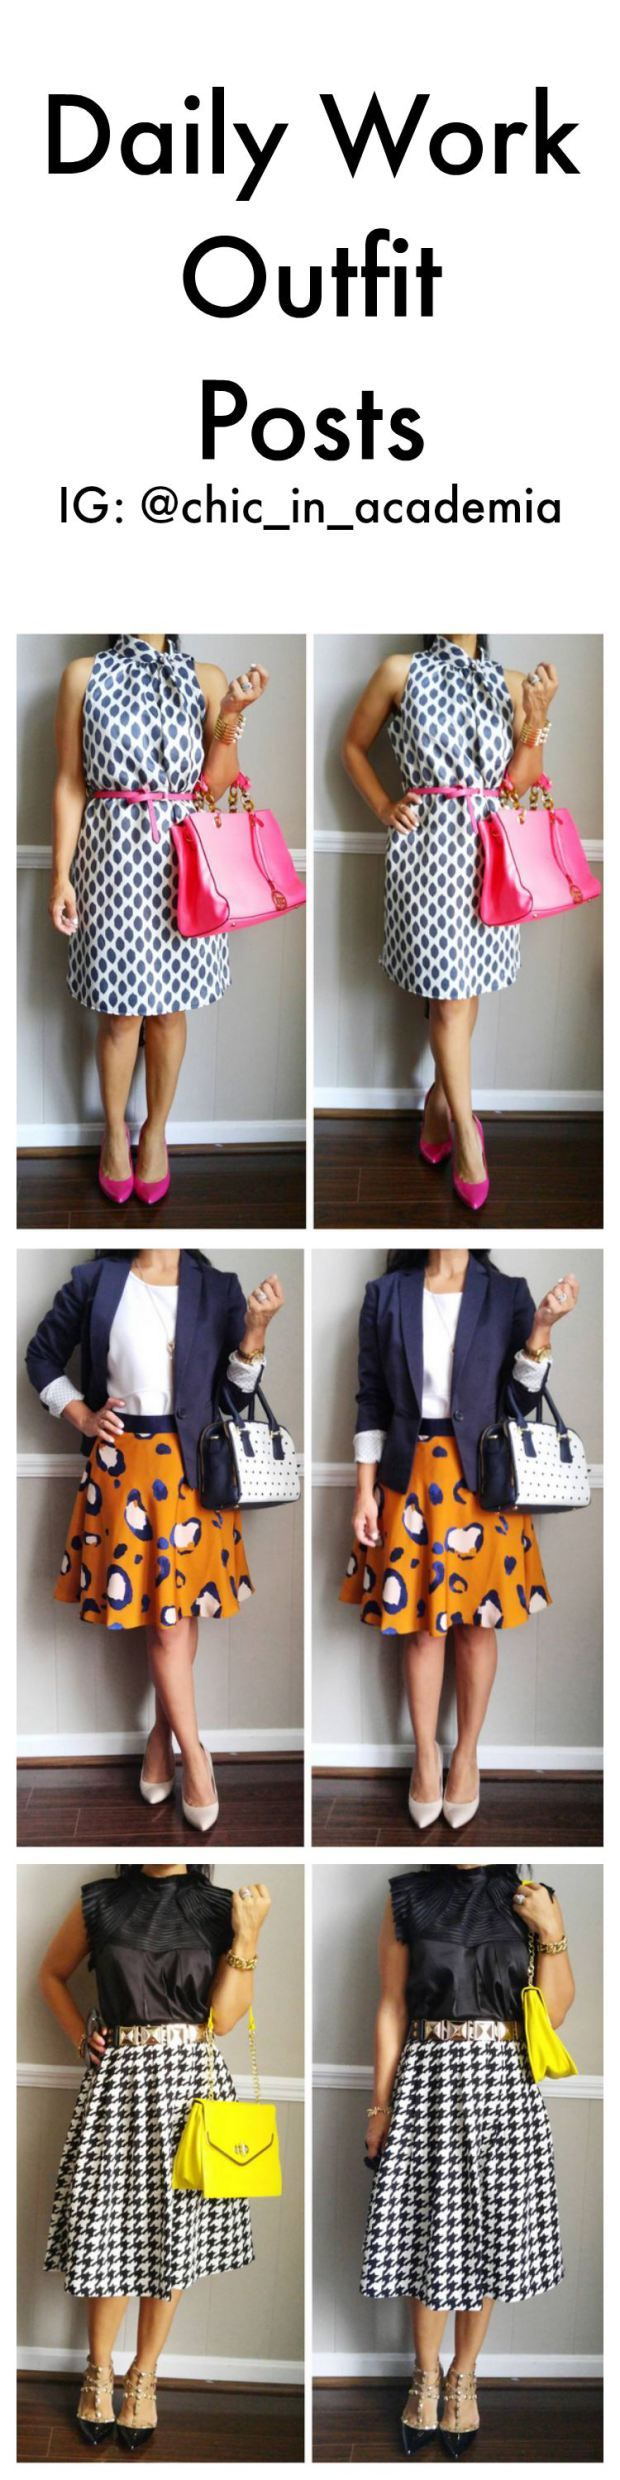 Work Outfits, http://chicinacademia.com